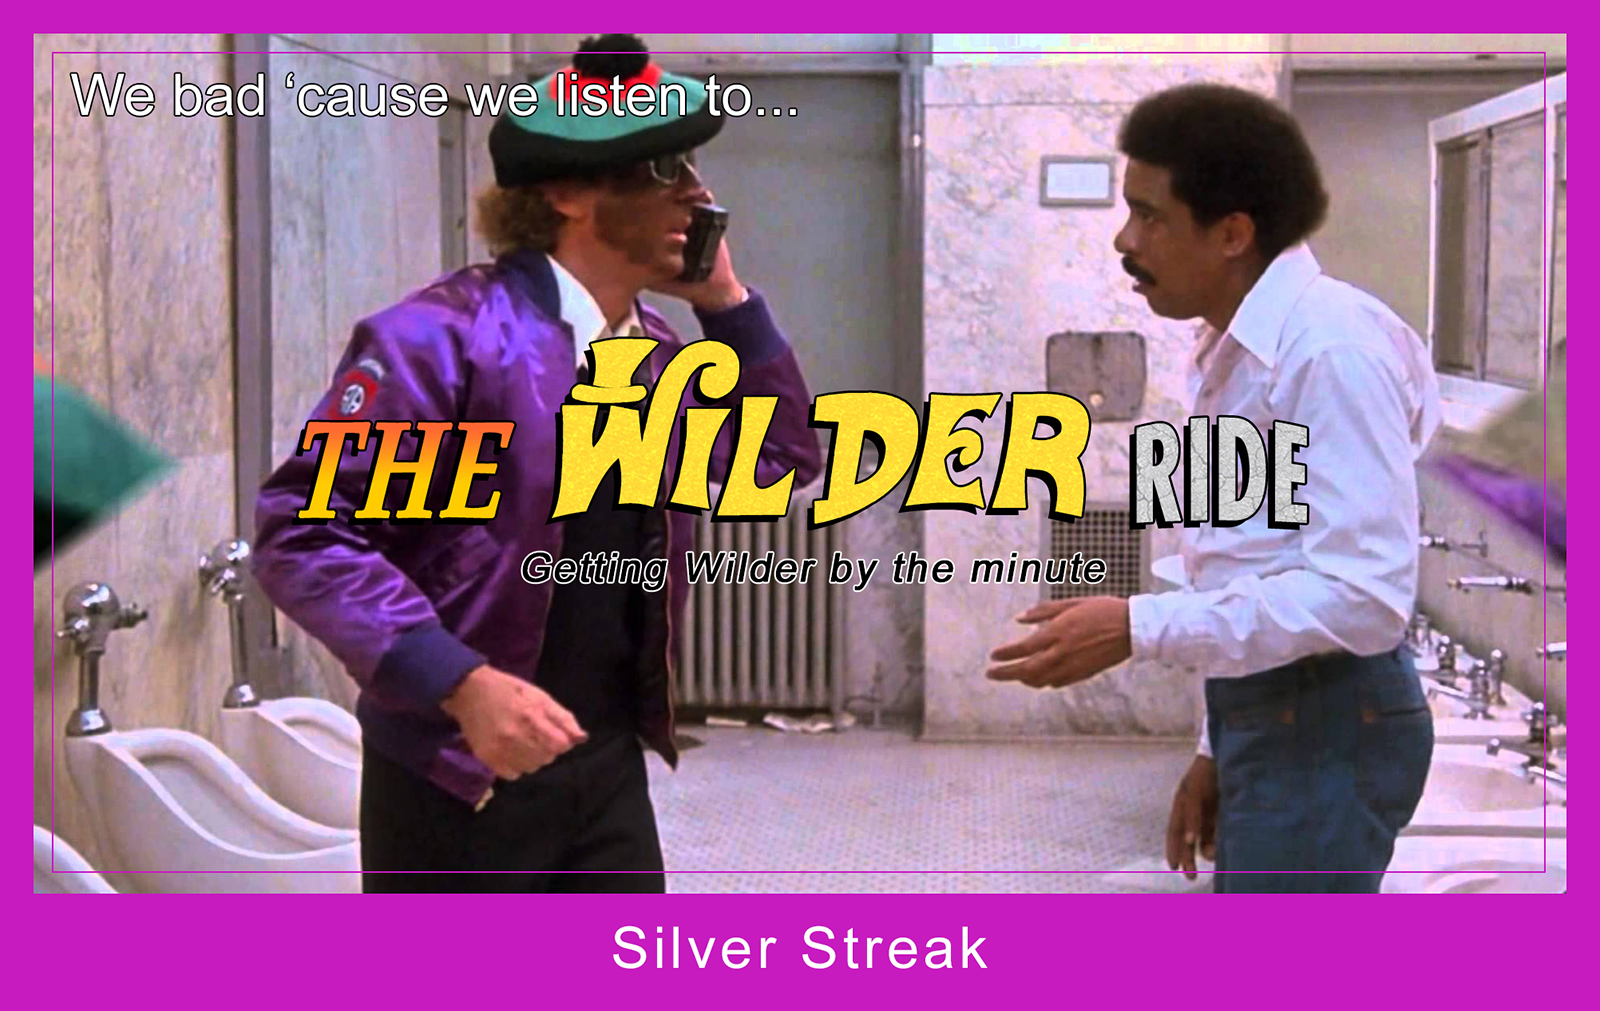 Patreon - Gene Wilder - Silver Streak with Richard Pryor - Trading Card